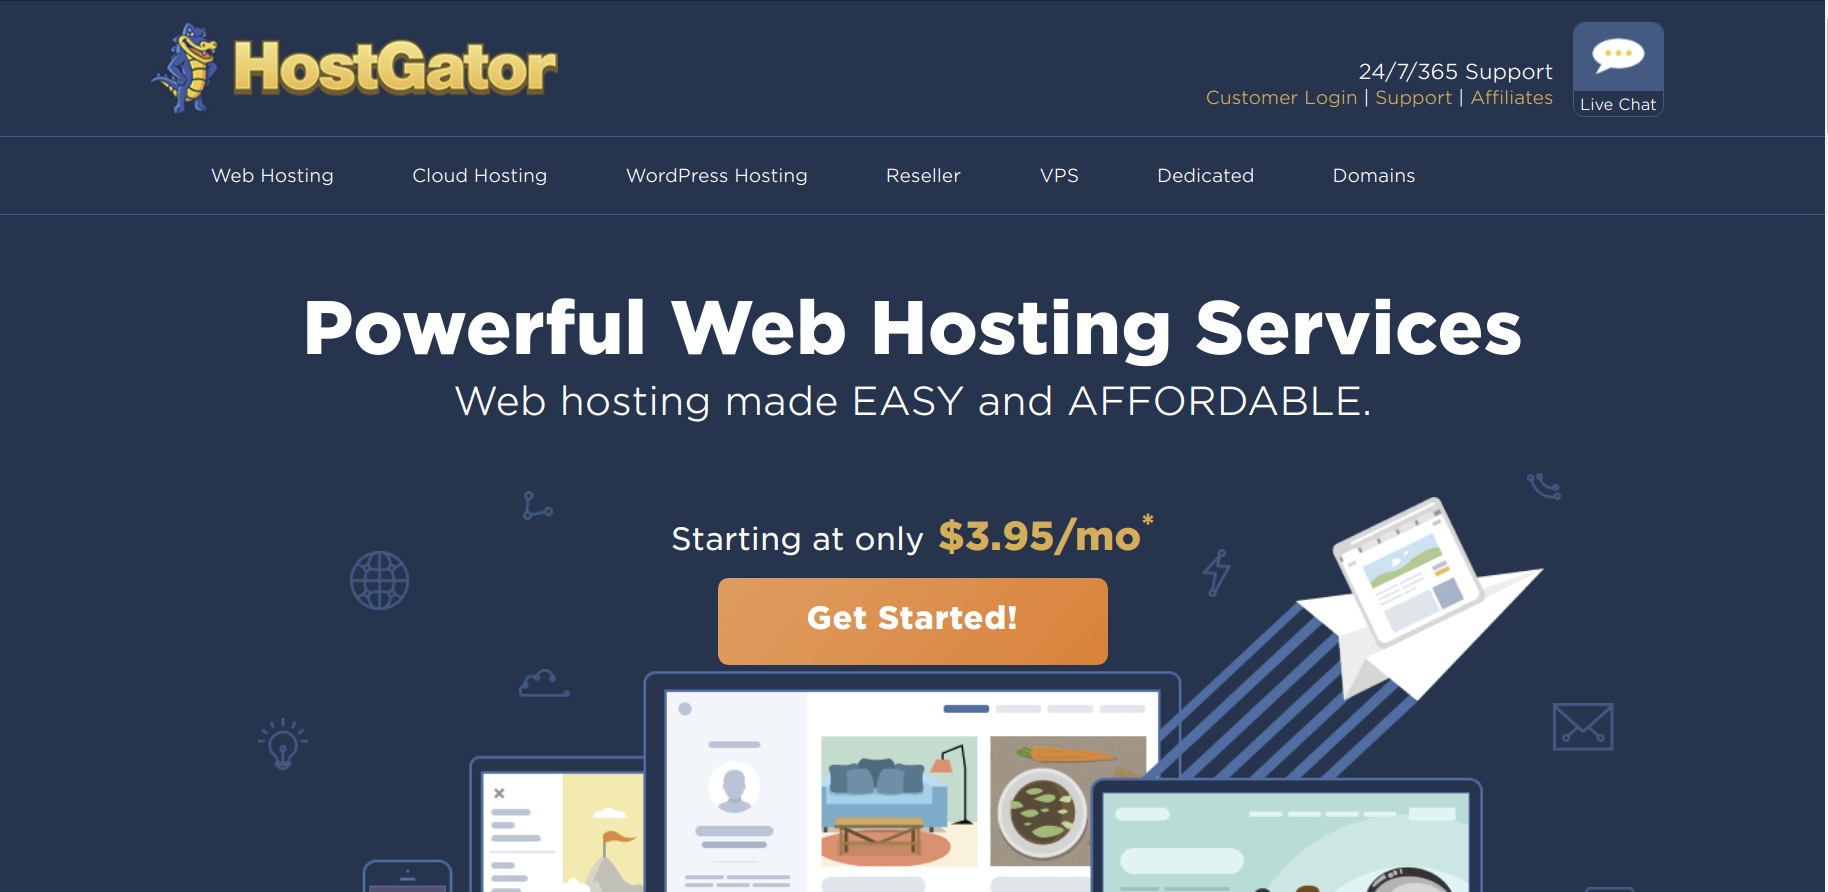 hostgator website hosting page